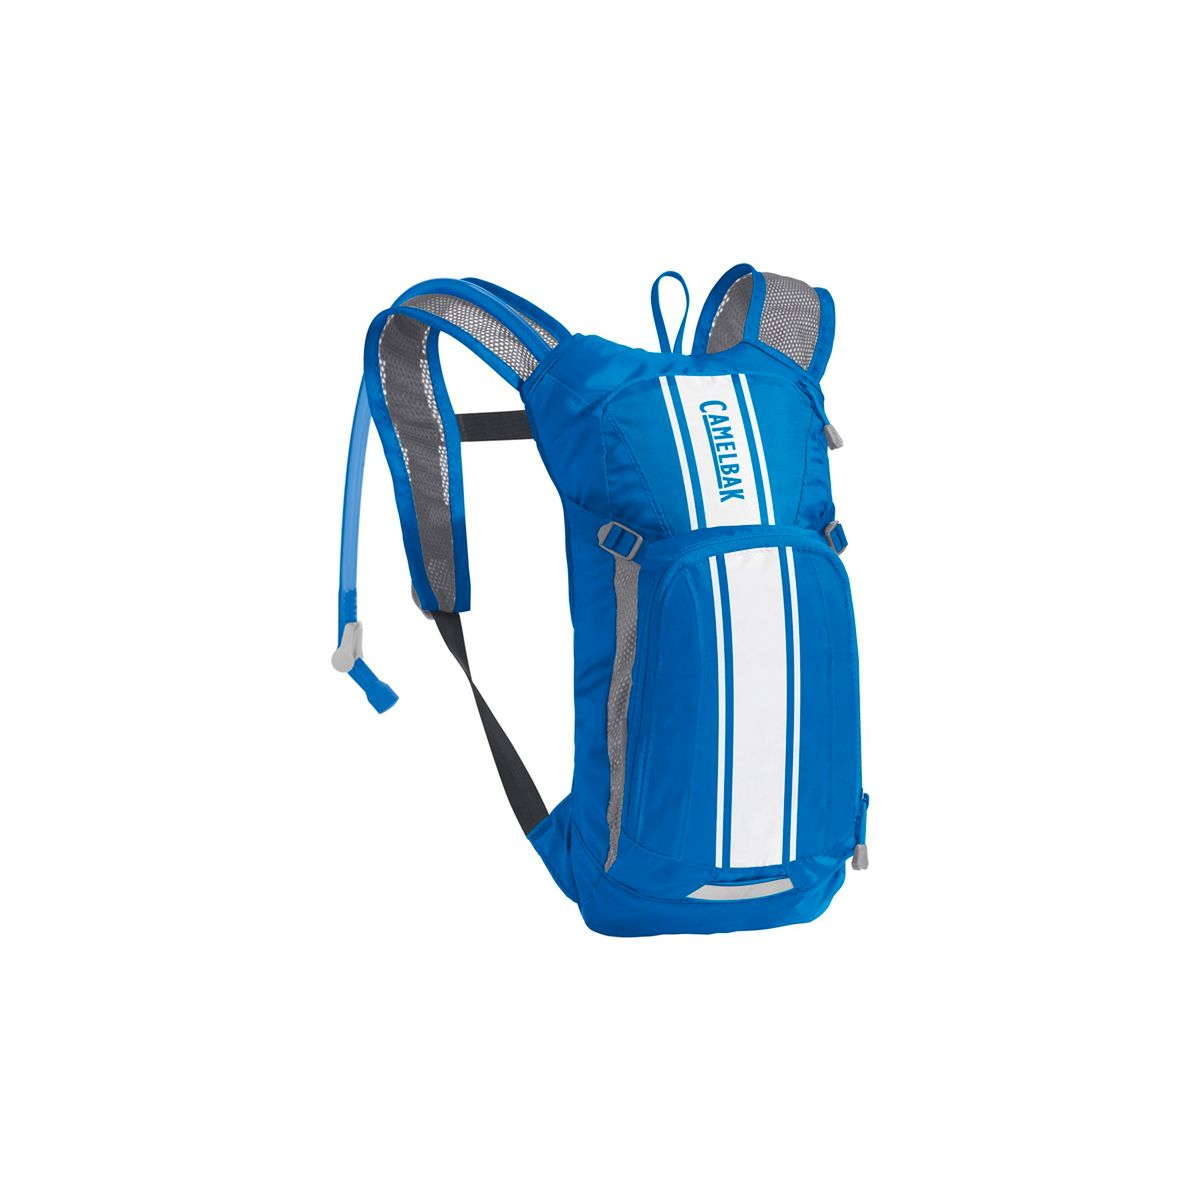 MINI M.U.L.E. kids' hydration pack